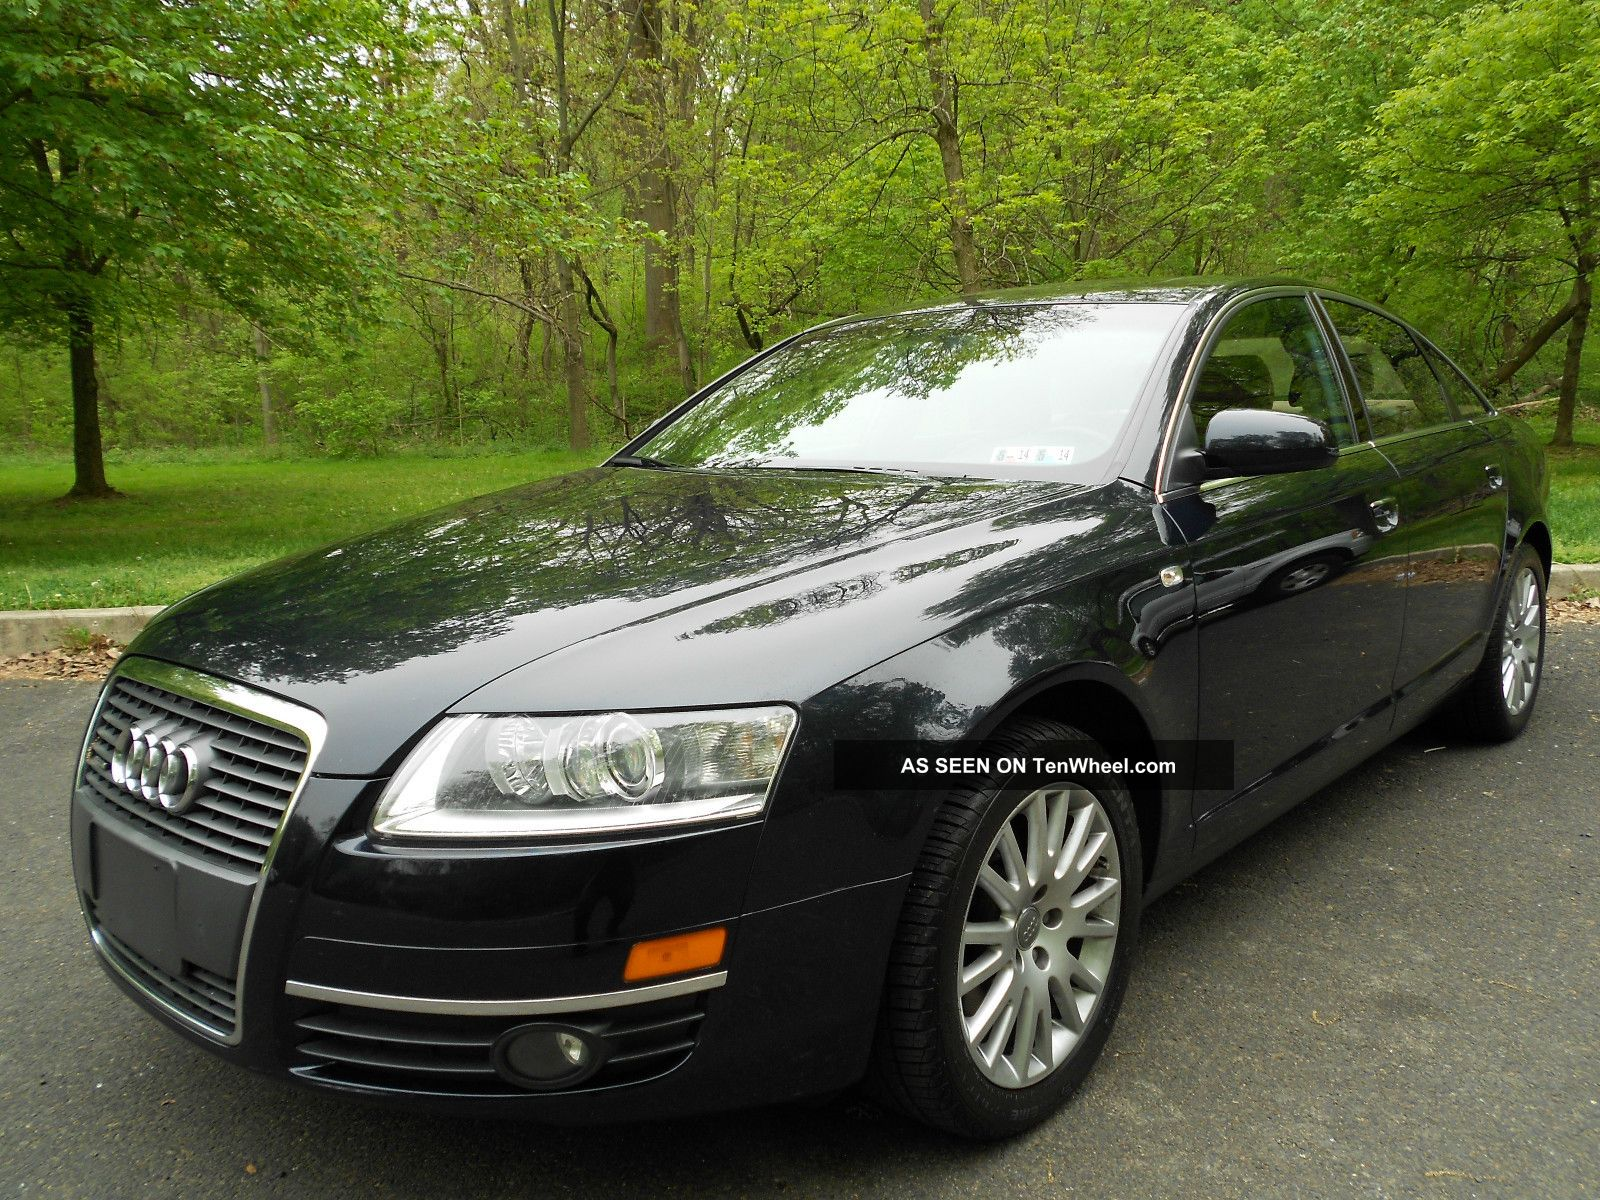 2007 audi a6 3 2 quattro showroom condition. Black Bedroom Furniture Sets. Home Design Ideas